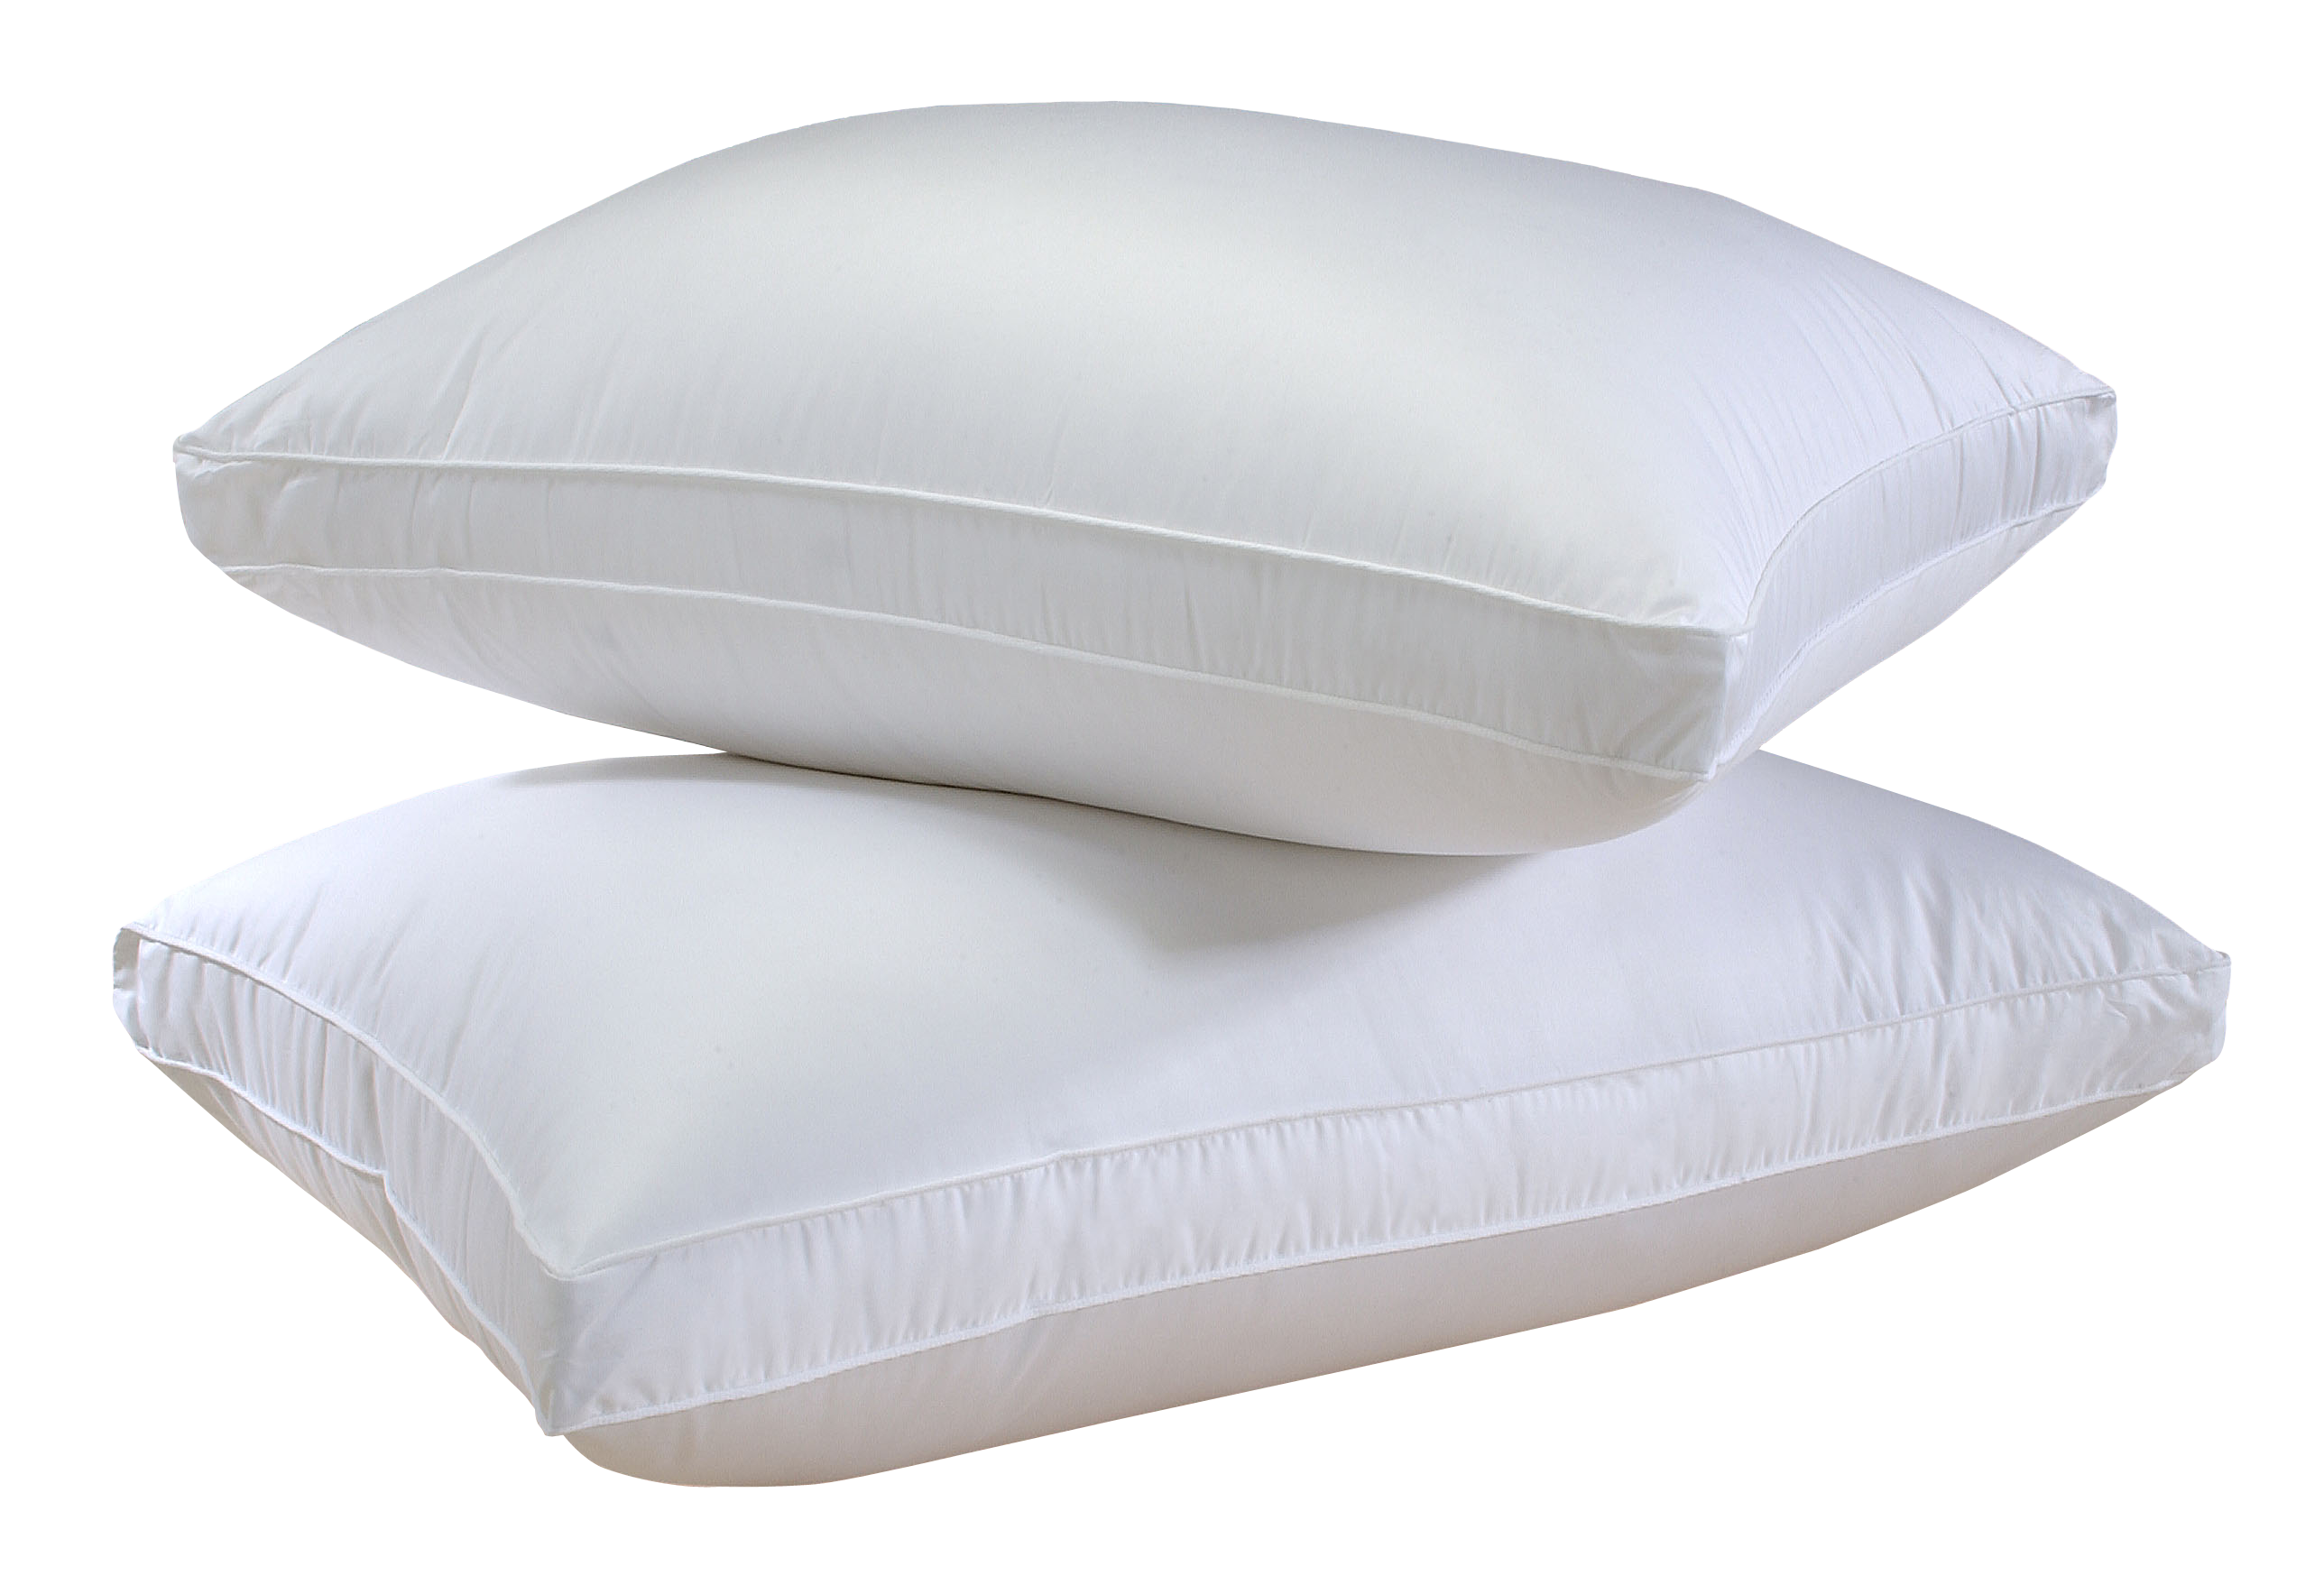 Pillow png. Cover bed sheet cushion